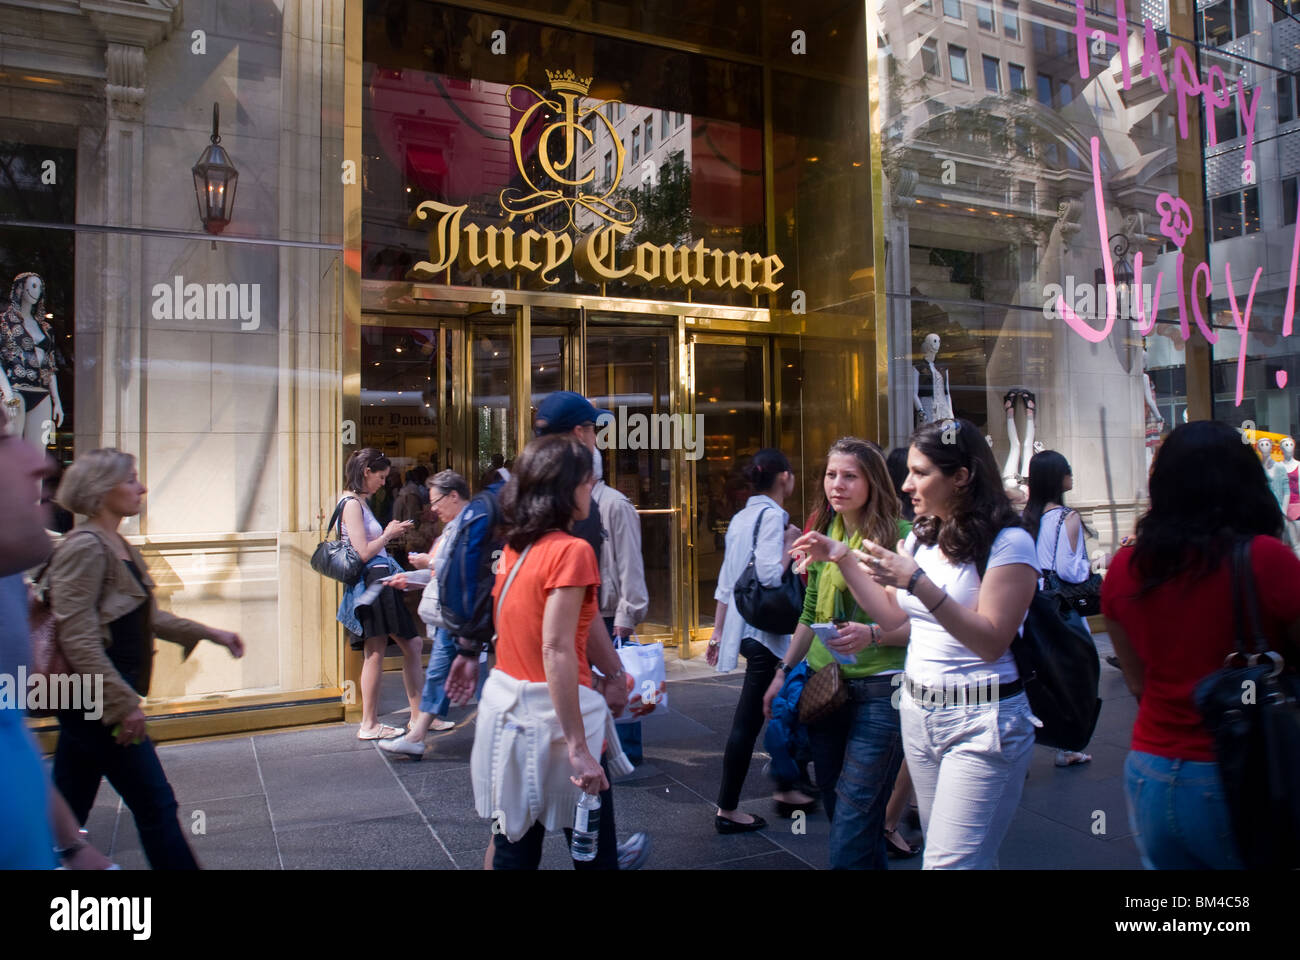 A Juicy Couture store in the midtown Manhattan neighborhood of New York - Stock Image